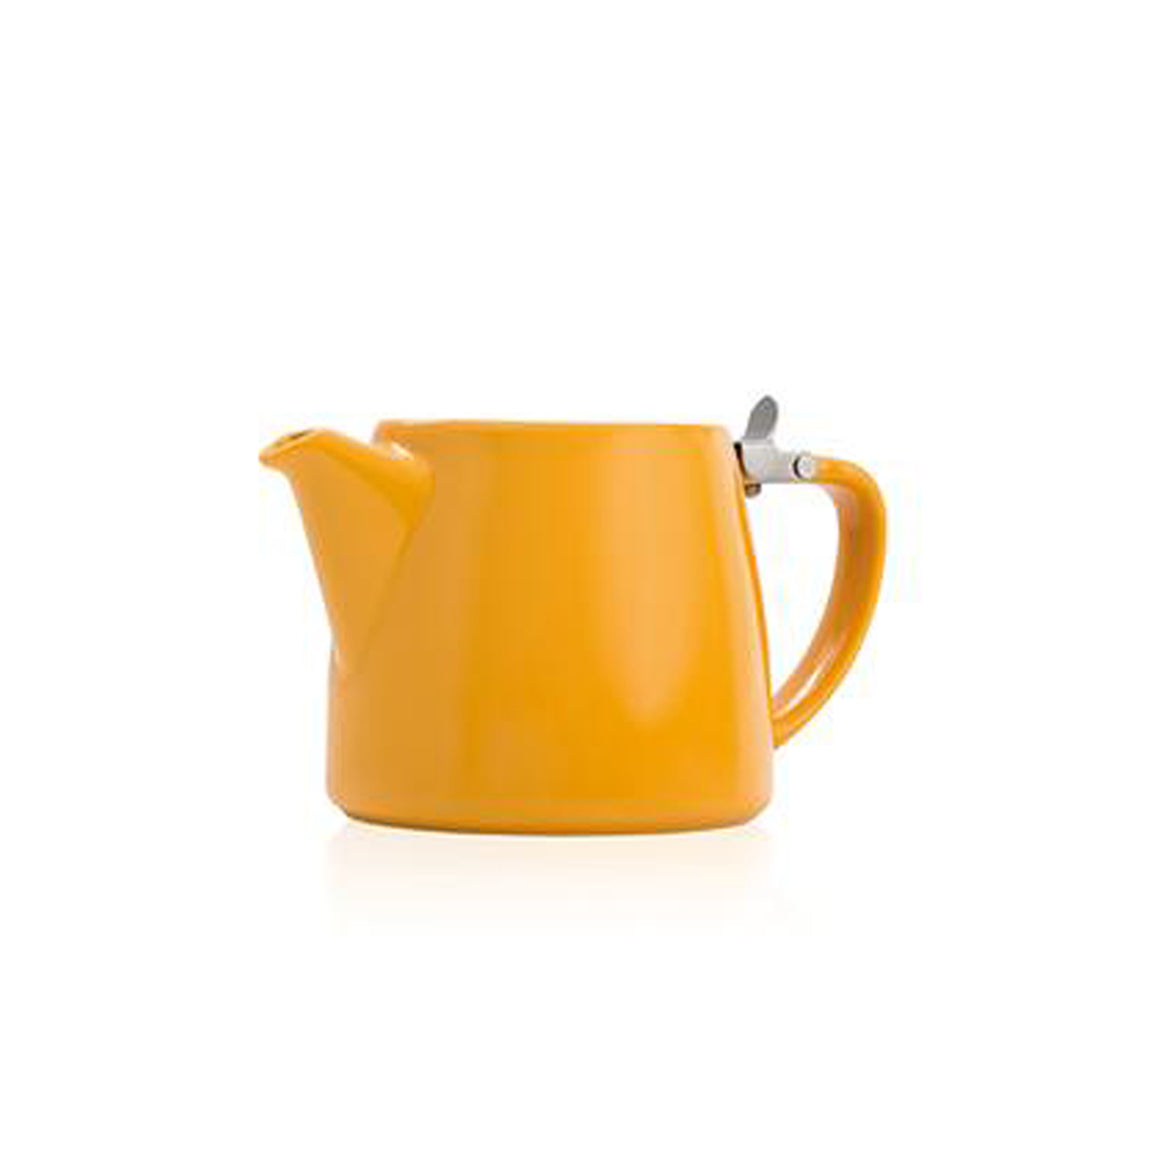 Forlife Mandarin Stump Teapot 18oz